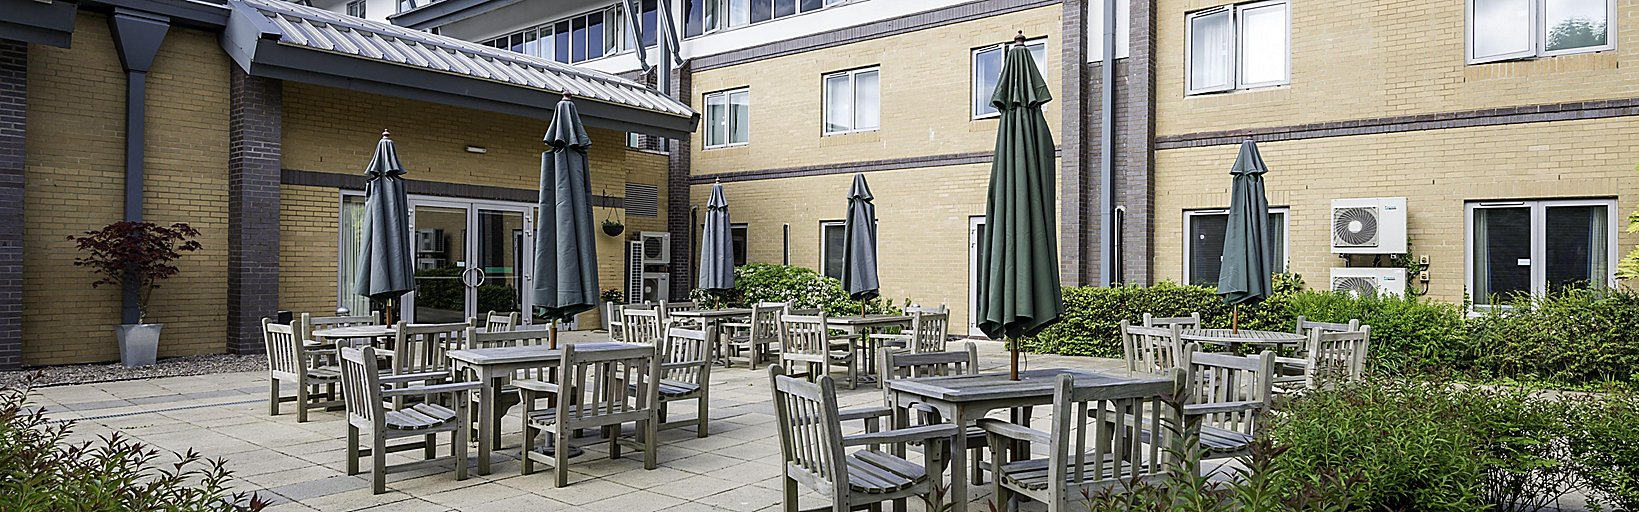 Out door patio academy meetings conference centre welcoming reception holiday inn